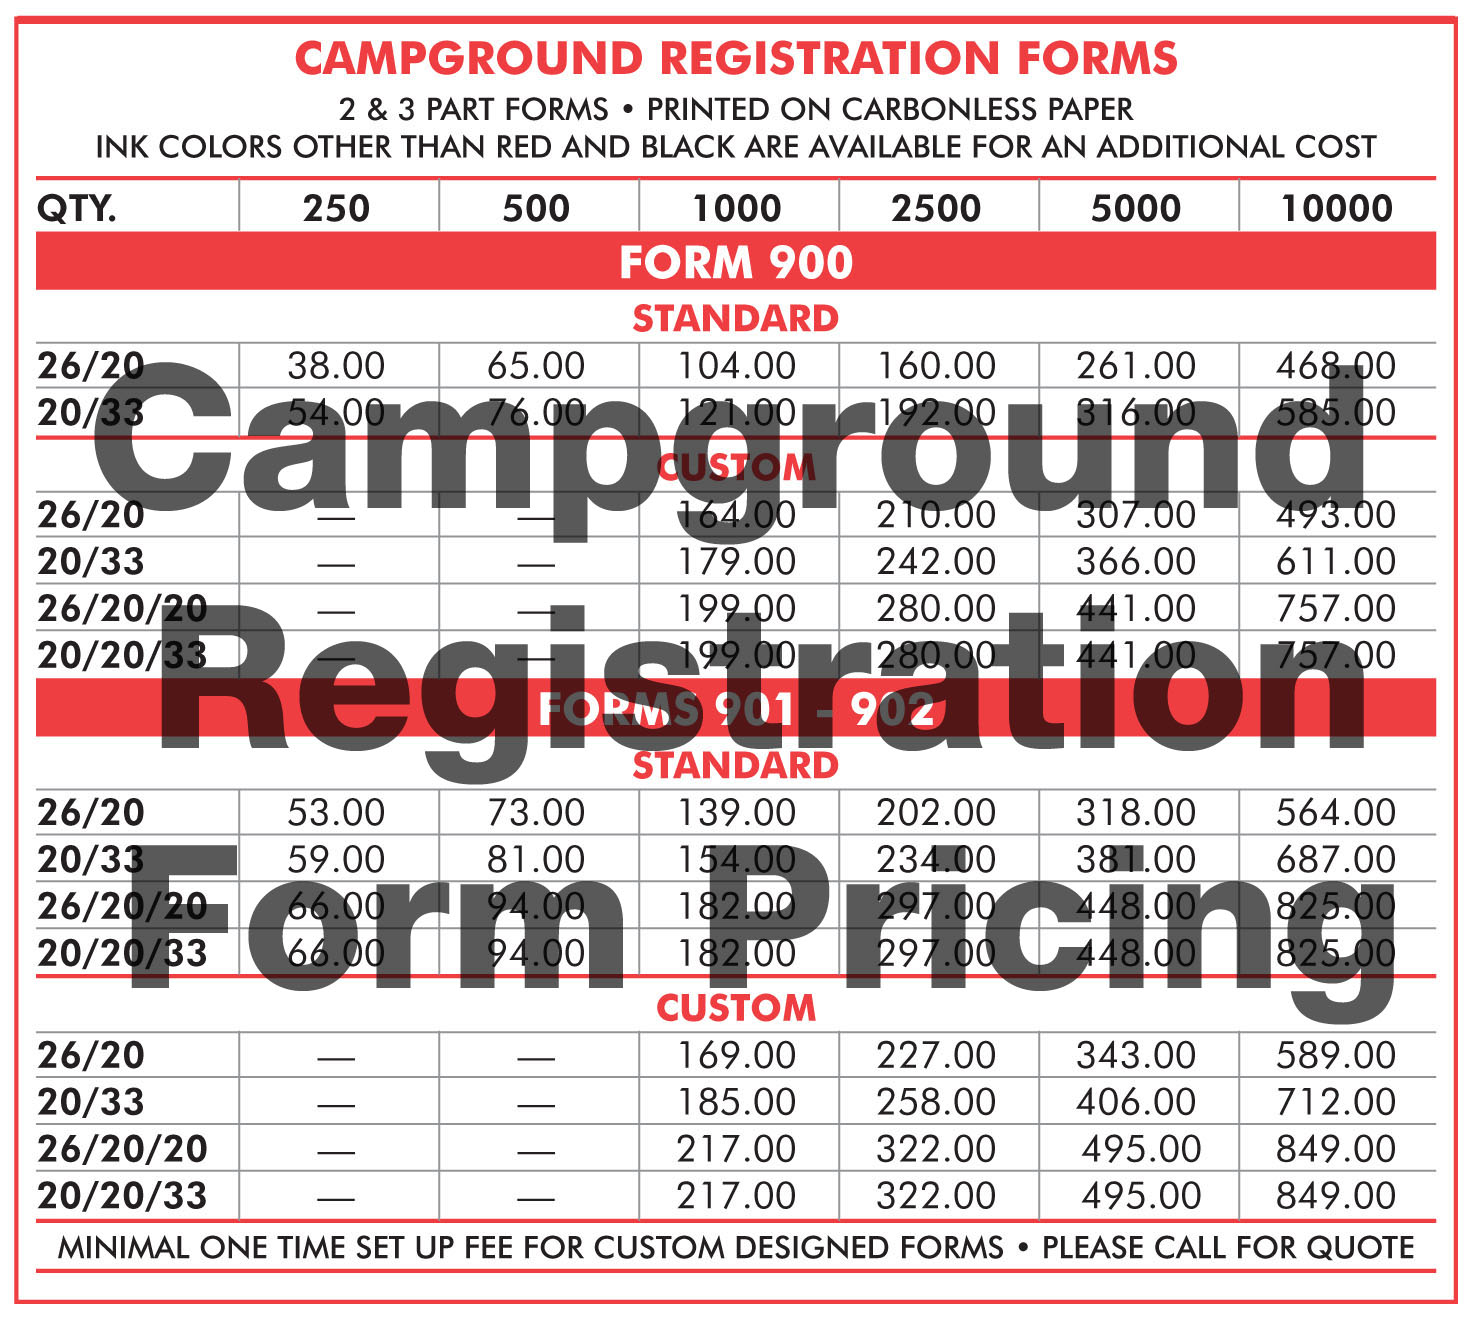 Campground Registration Form Pricing